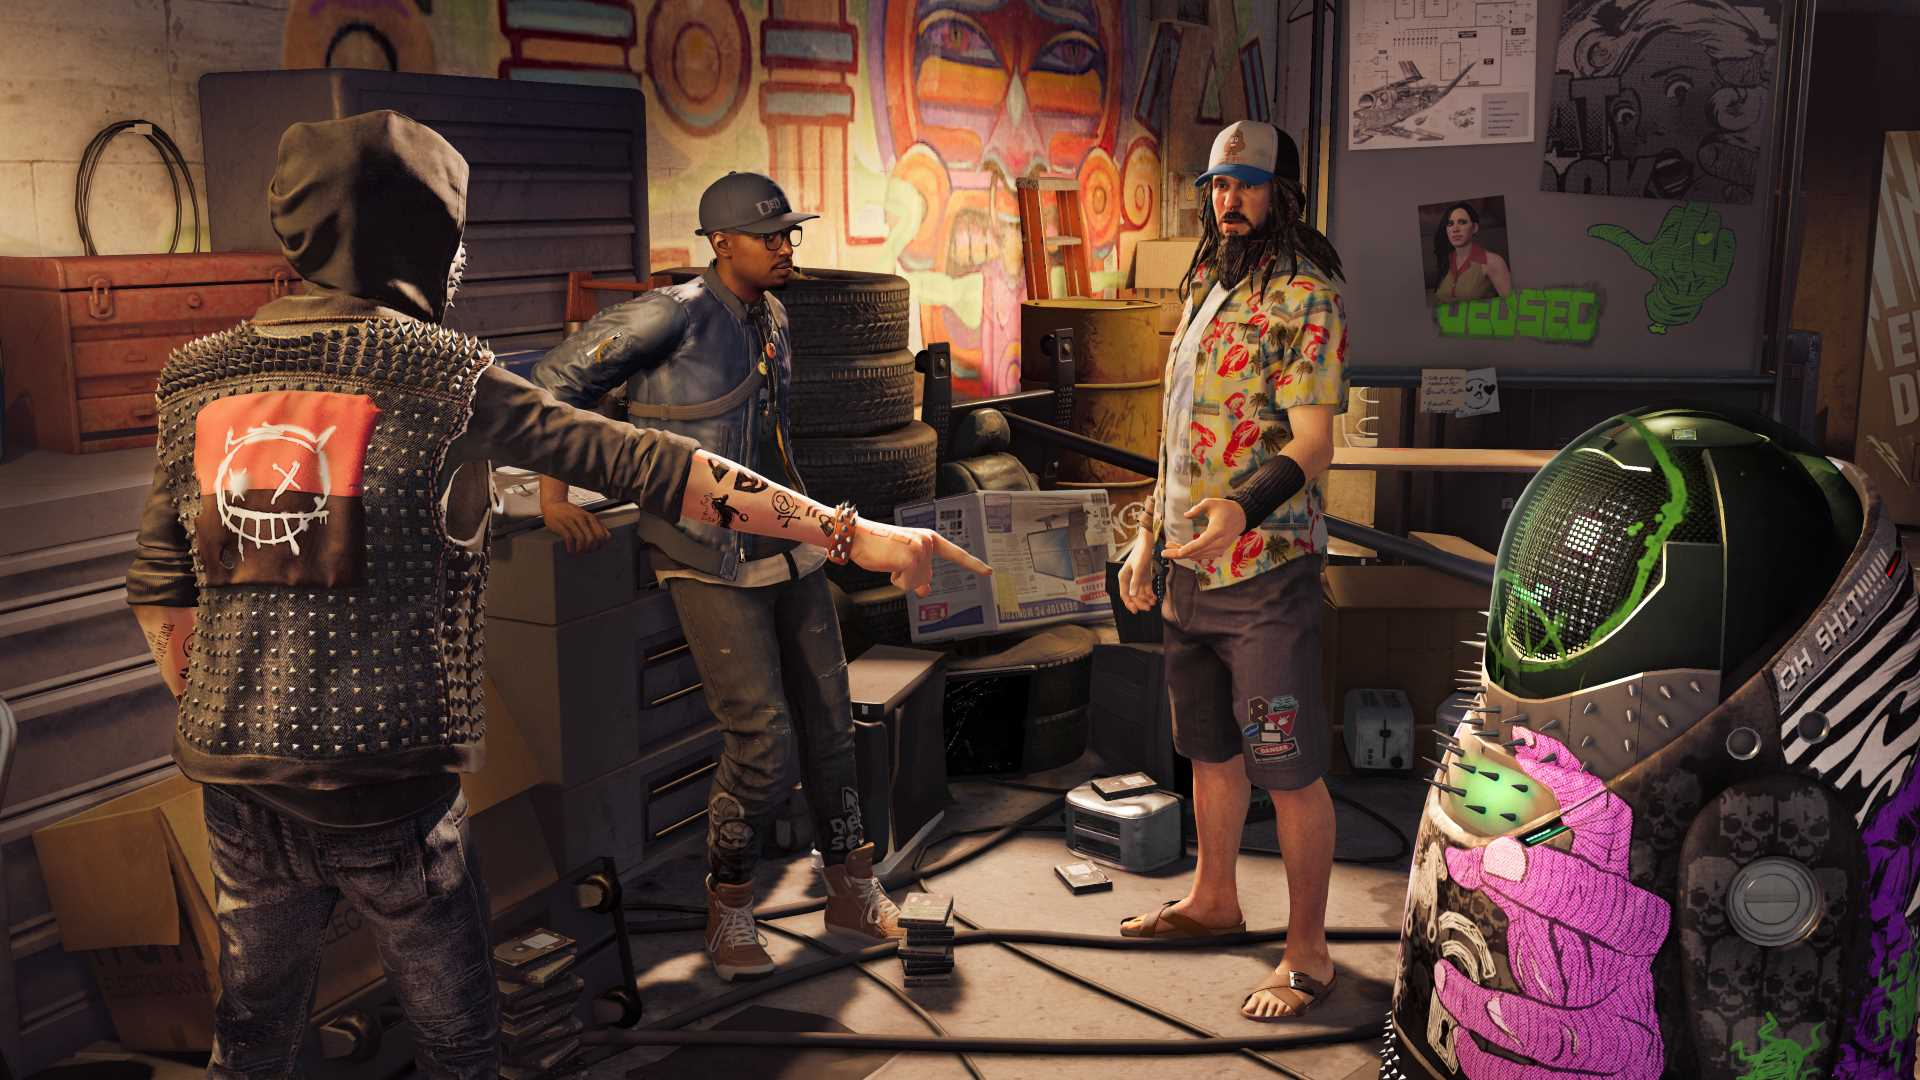 watch_dogs_2_wrench_jnr